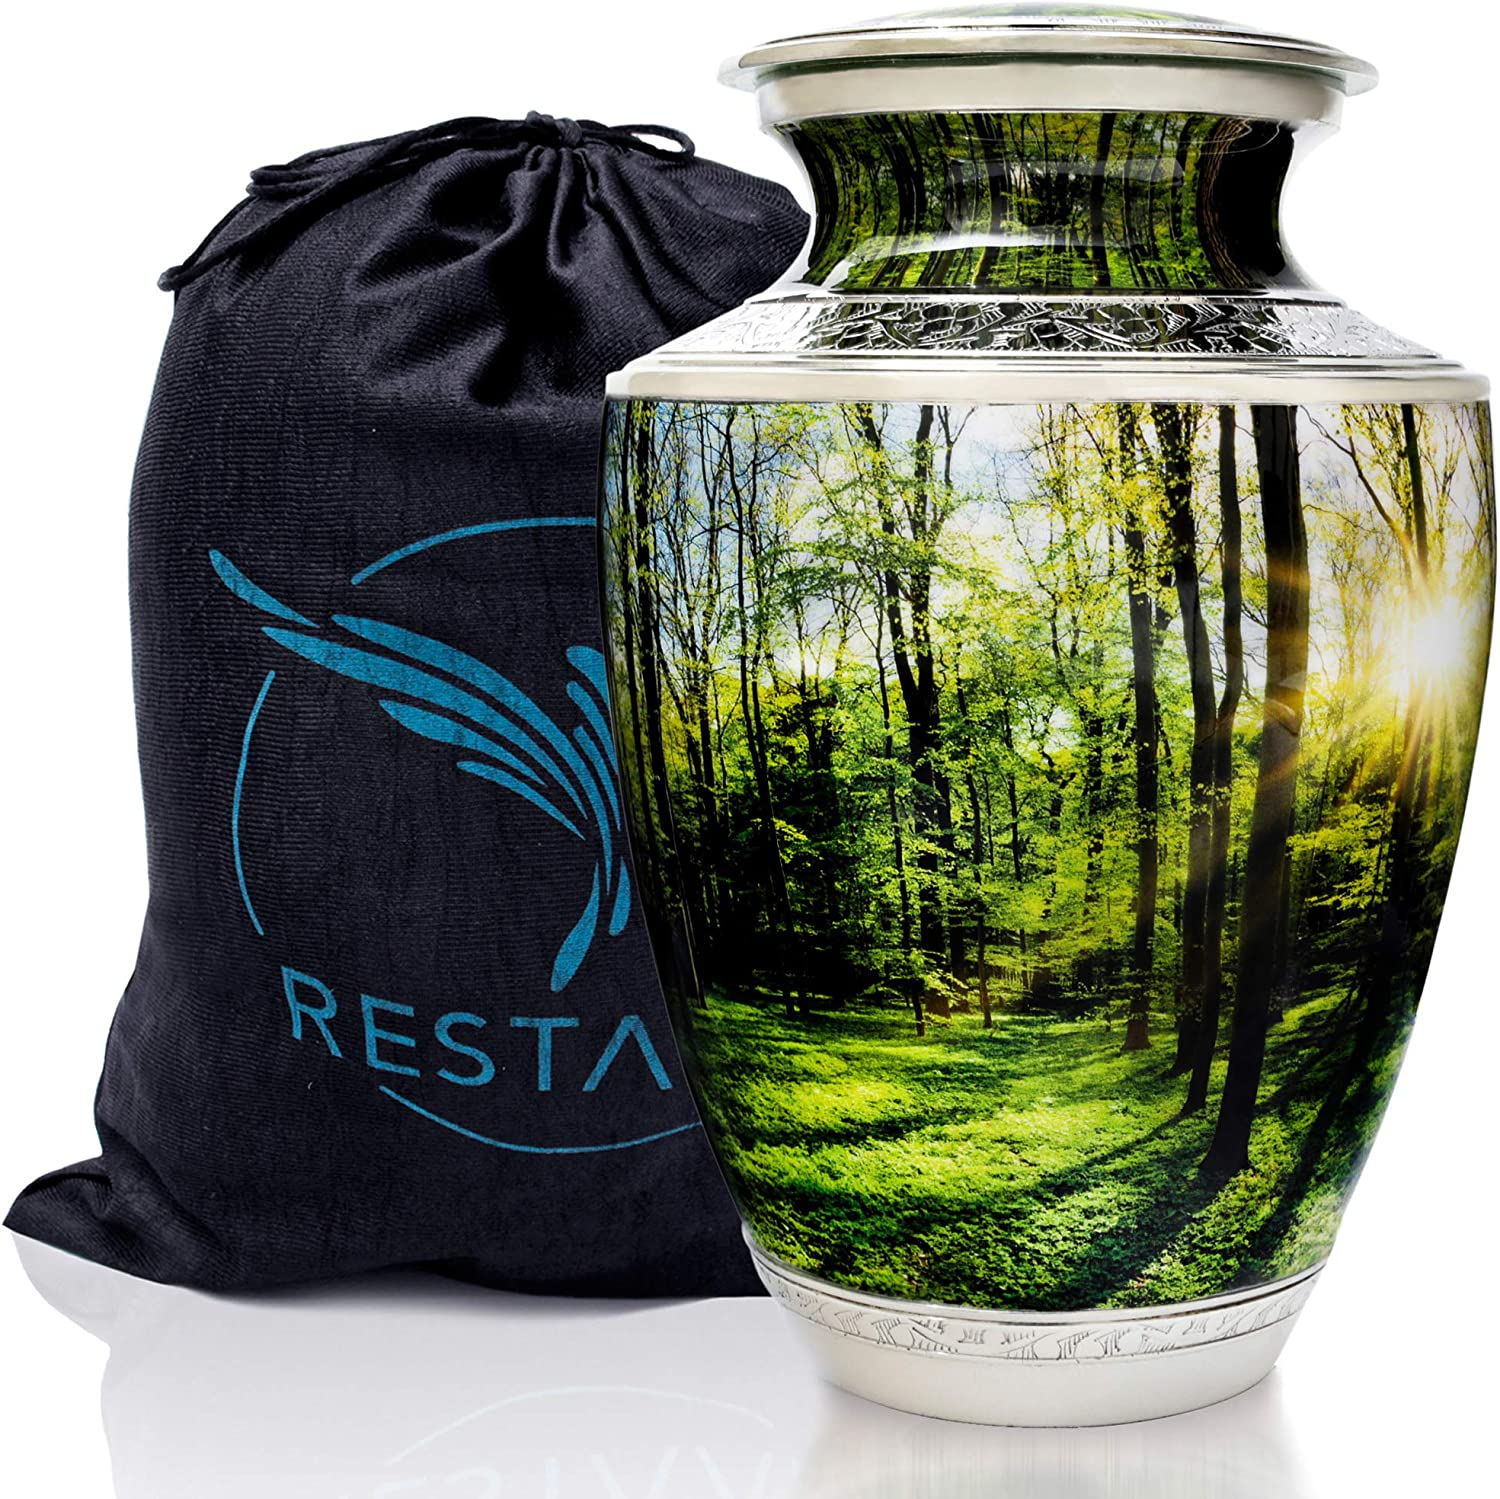 Cremation Urns for Human Ashes Adult Large. Peaceful Forest Urn for Memorial, Funeral or Burial. Restaall for Peace of Mind